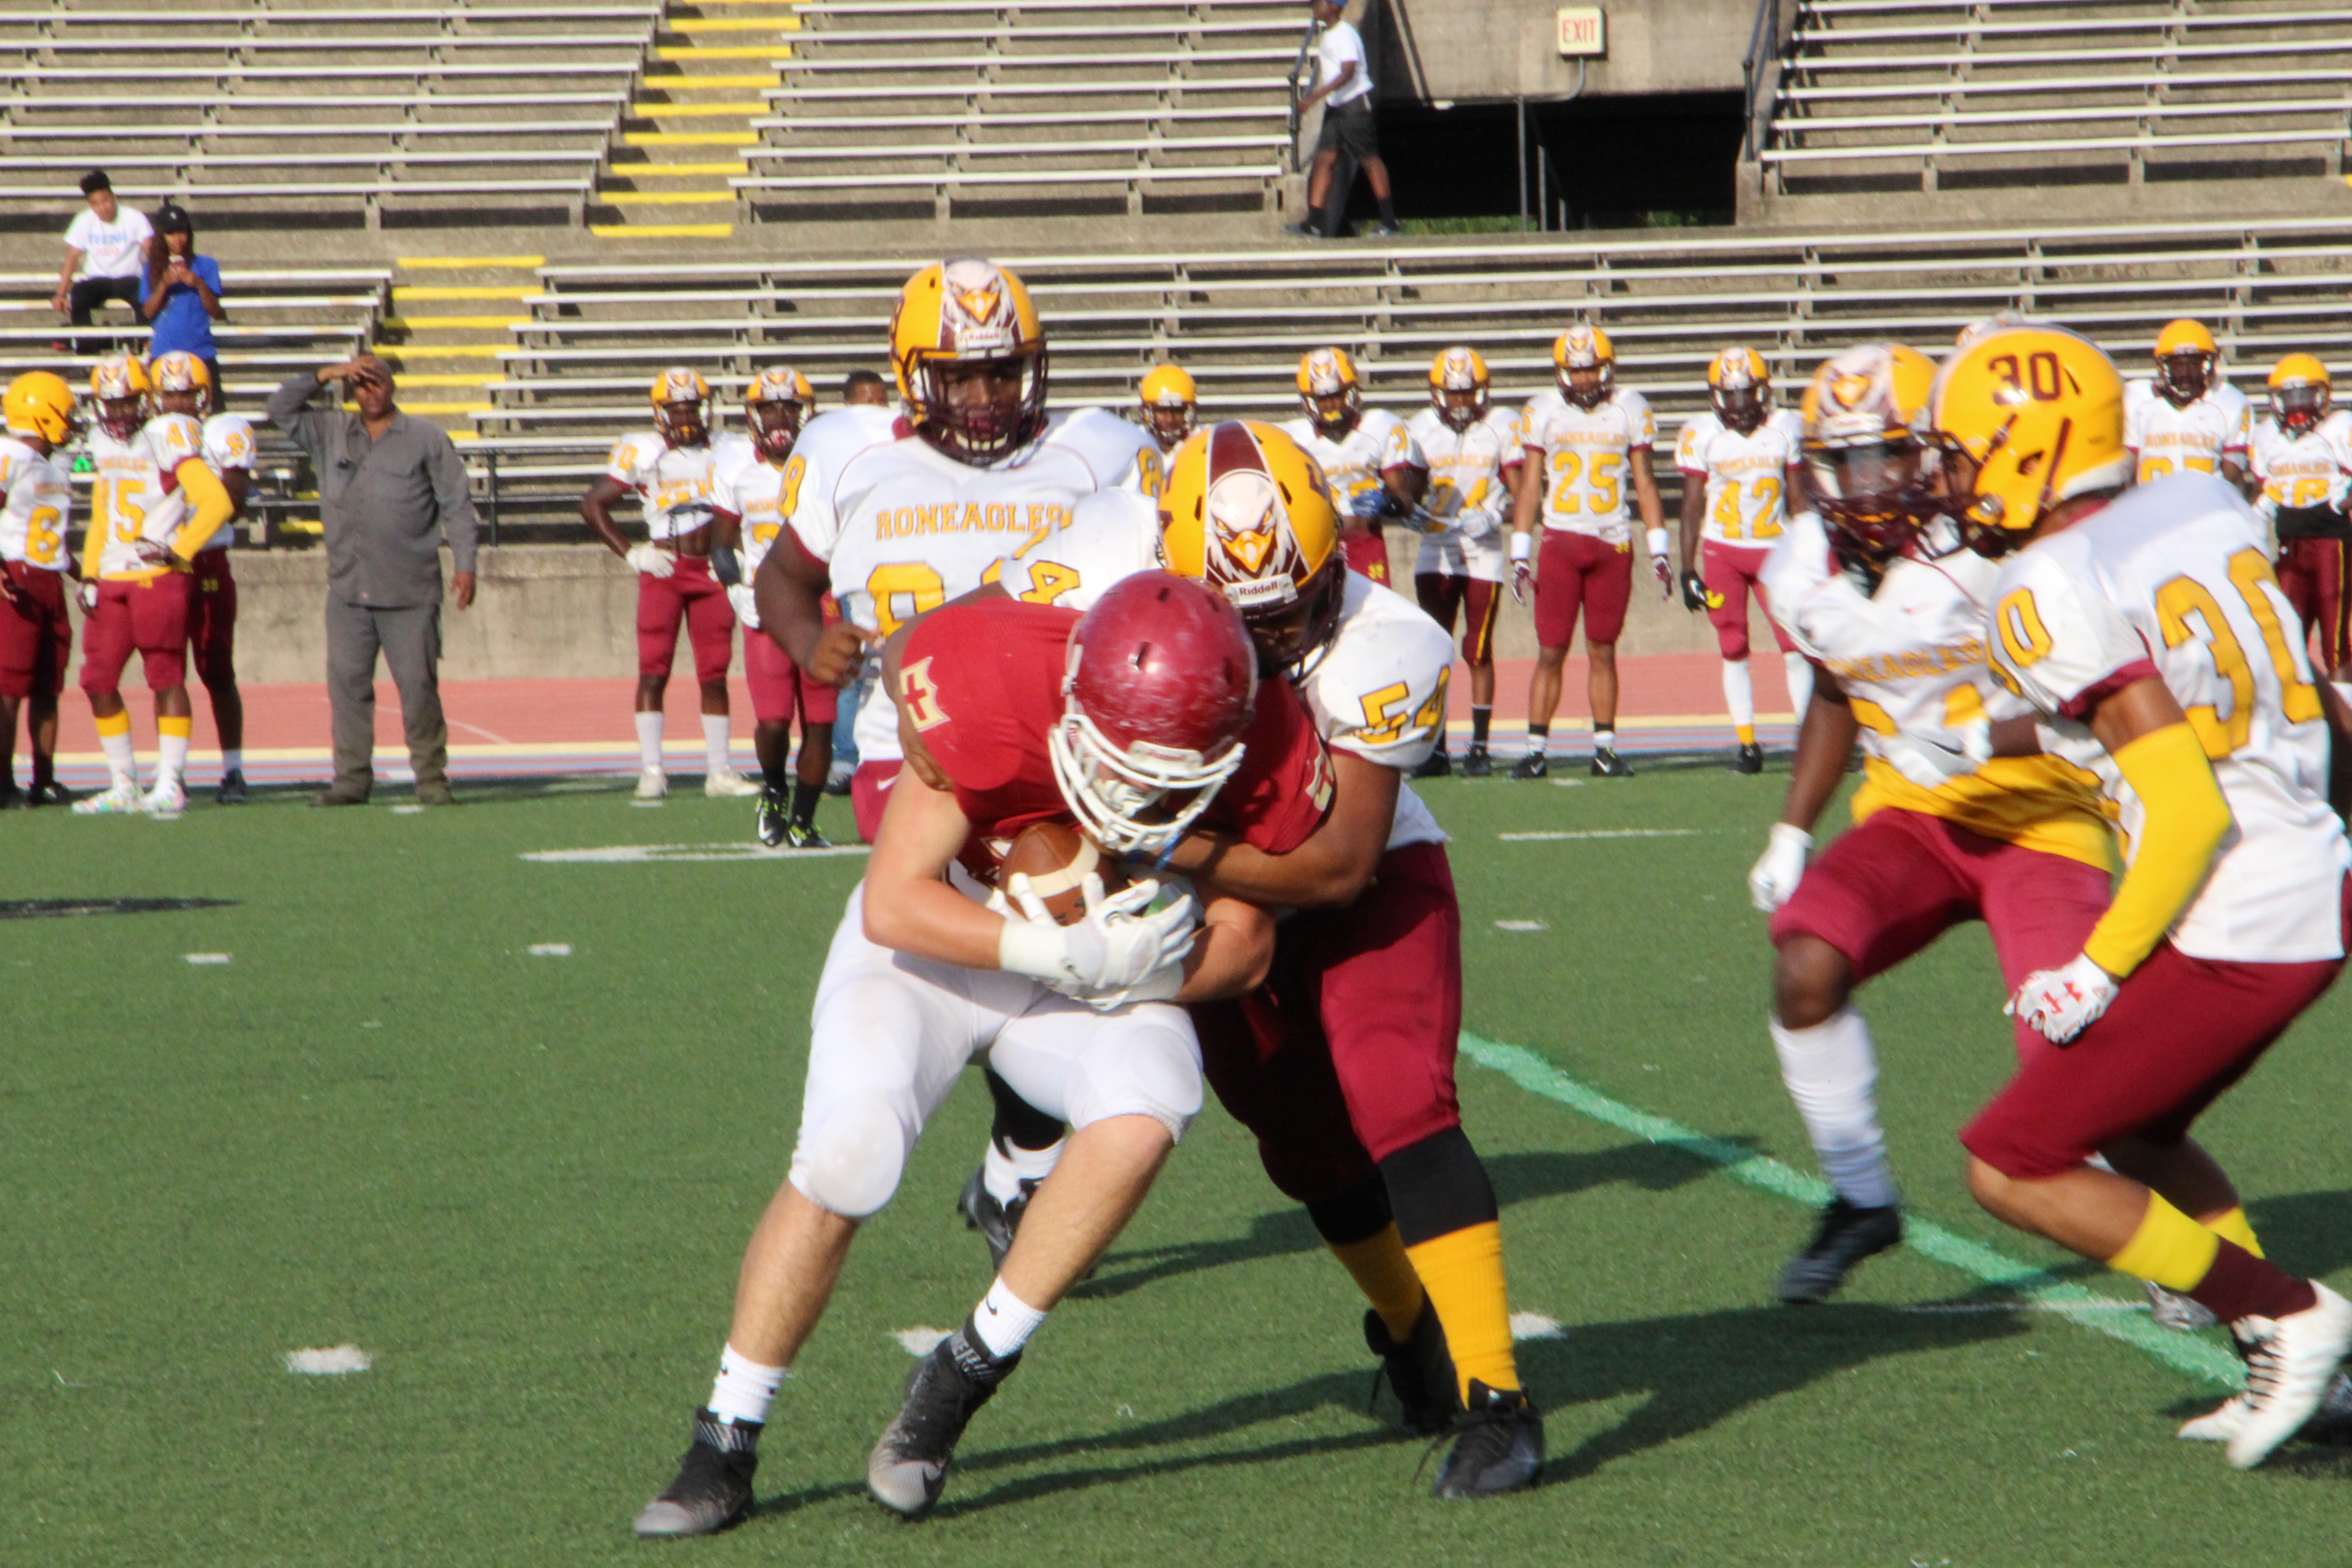 Bonis Crusader Football Team Playing Tough And With Promise